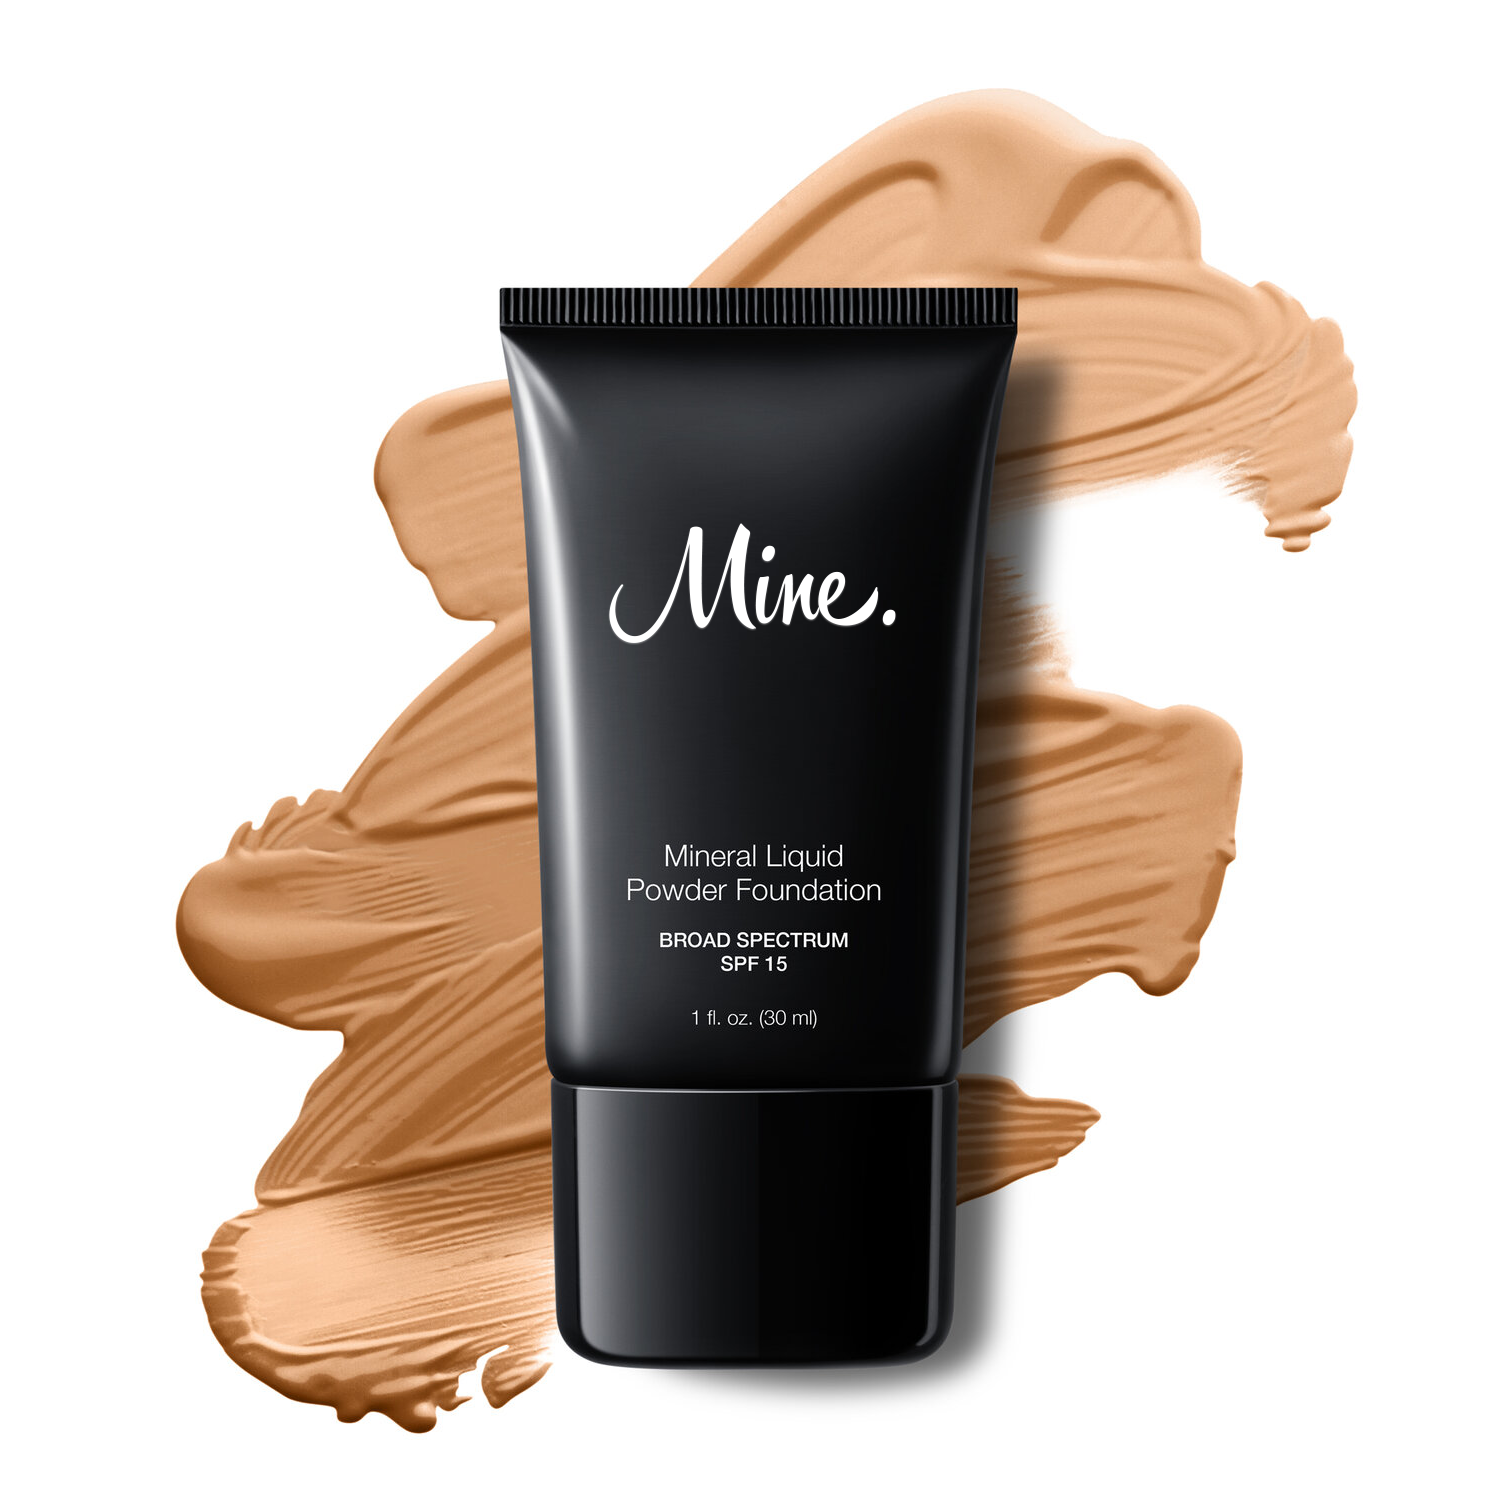 Mine. Mineral Liquid Powder Foundation